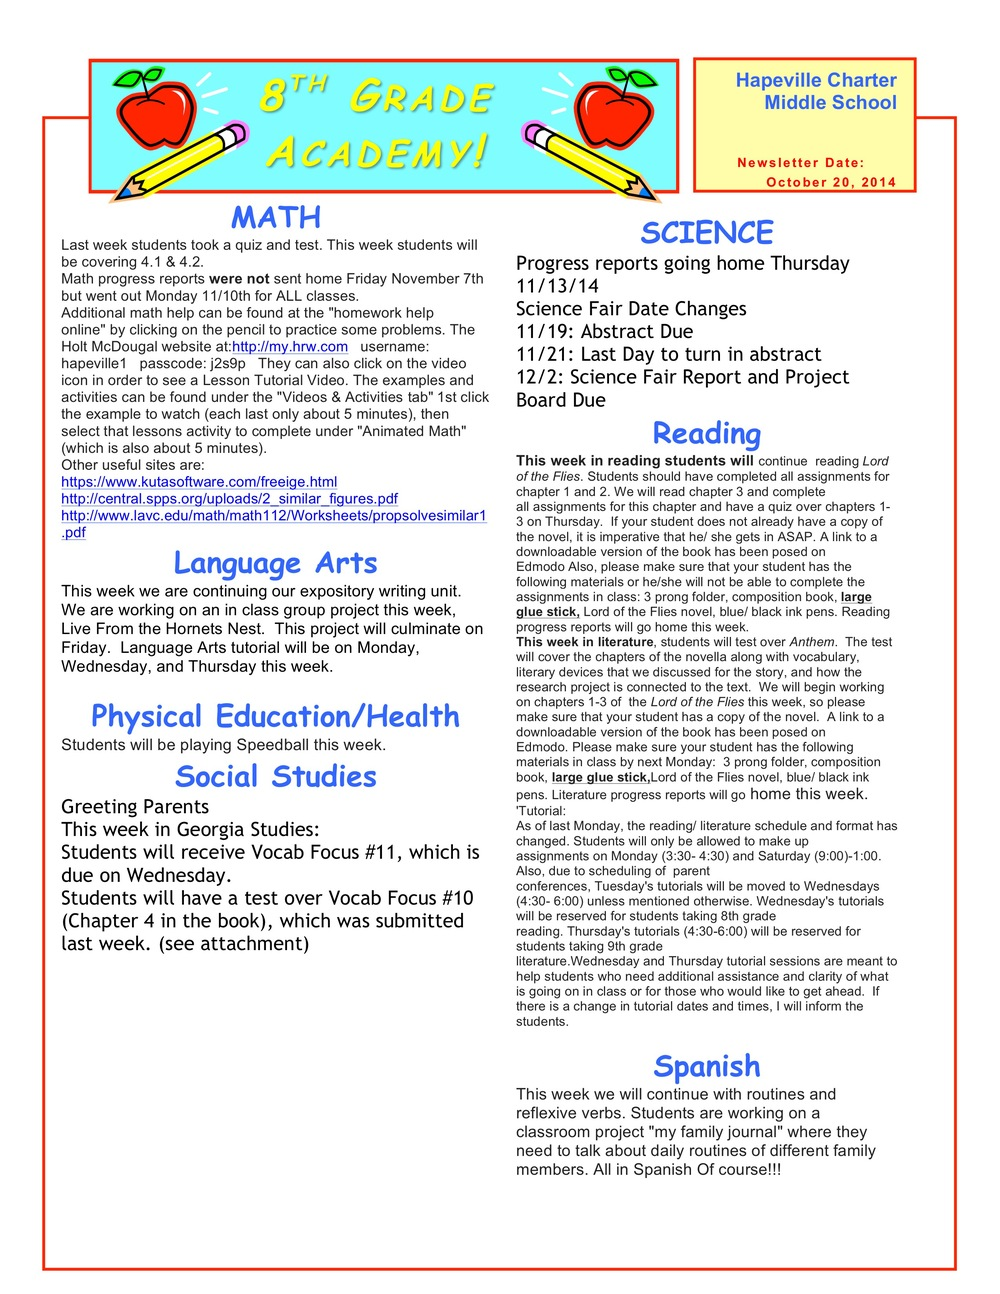 Newsletter Image8th grade nov 10-14.jpeg